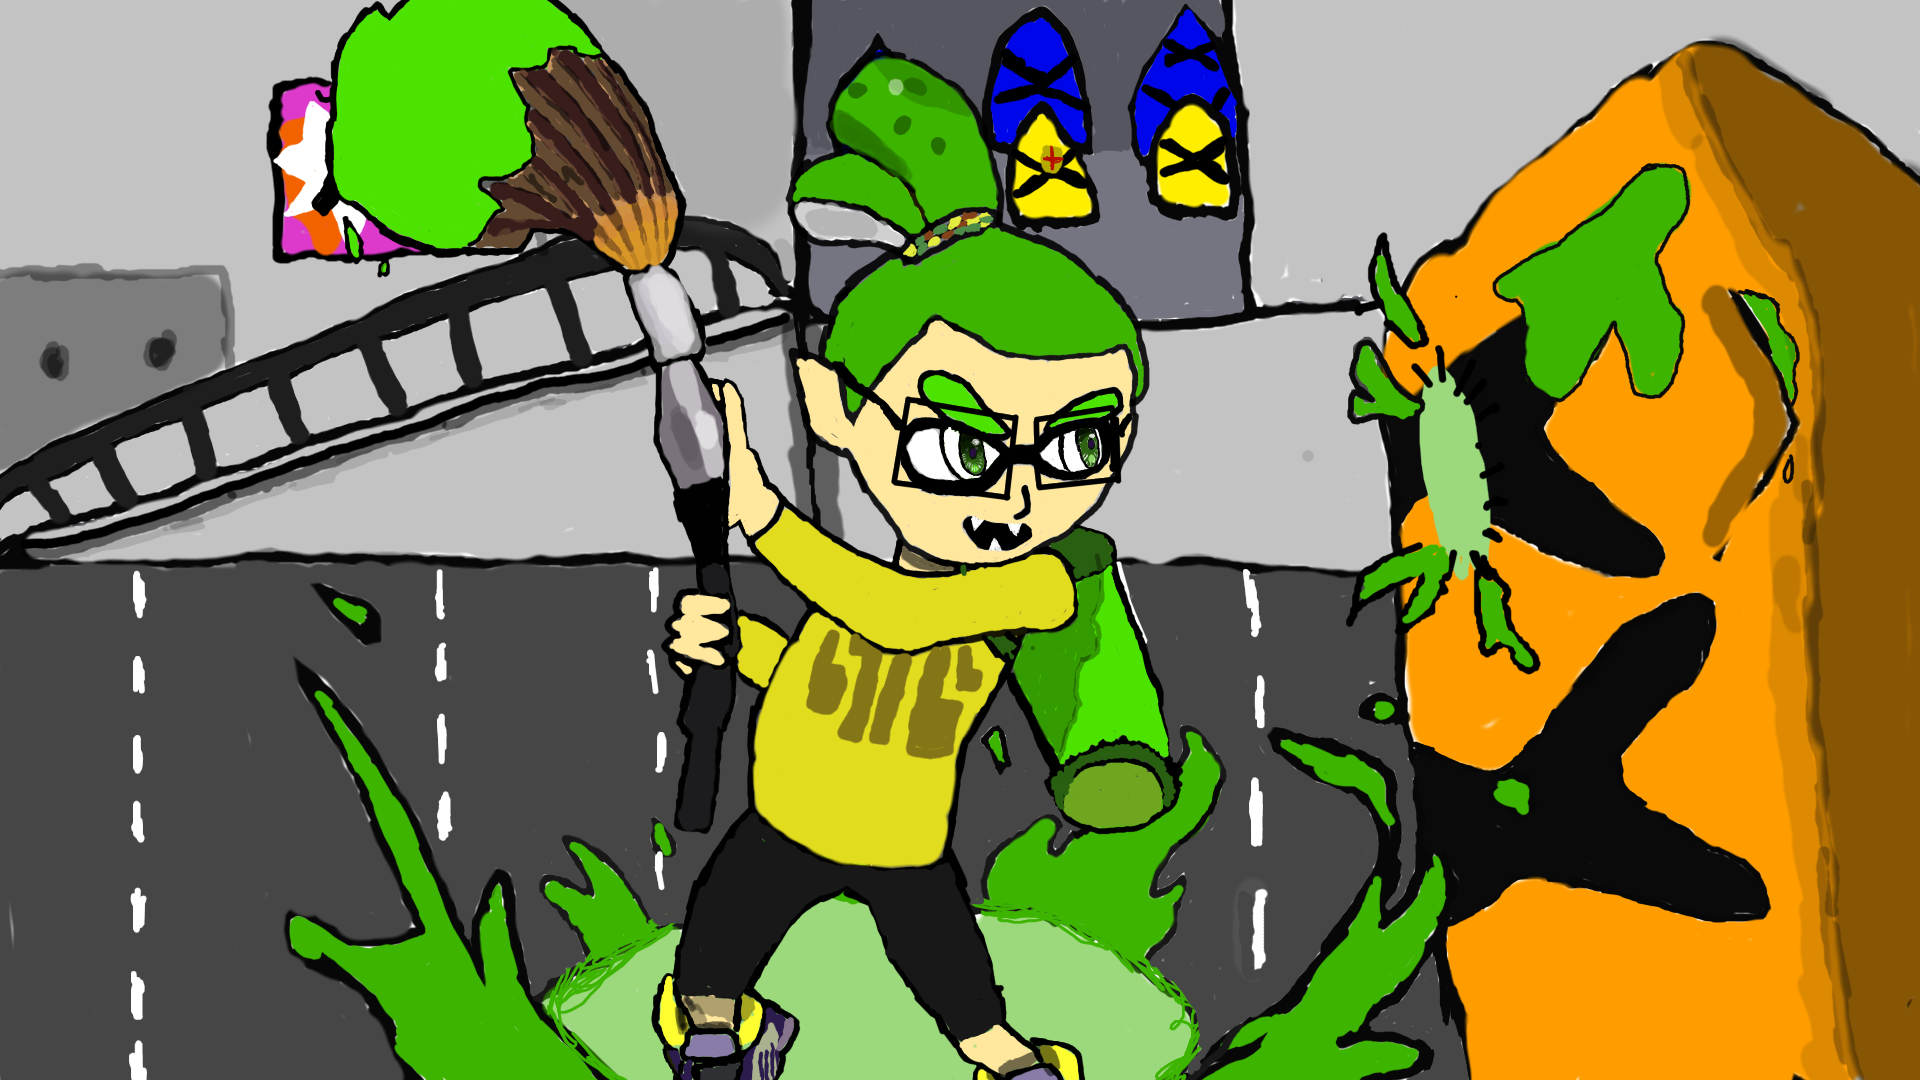 My Inkling! (Splatoon)